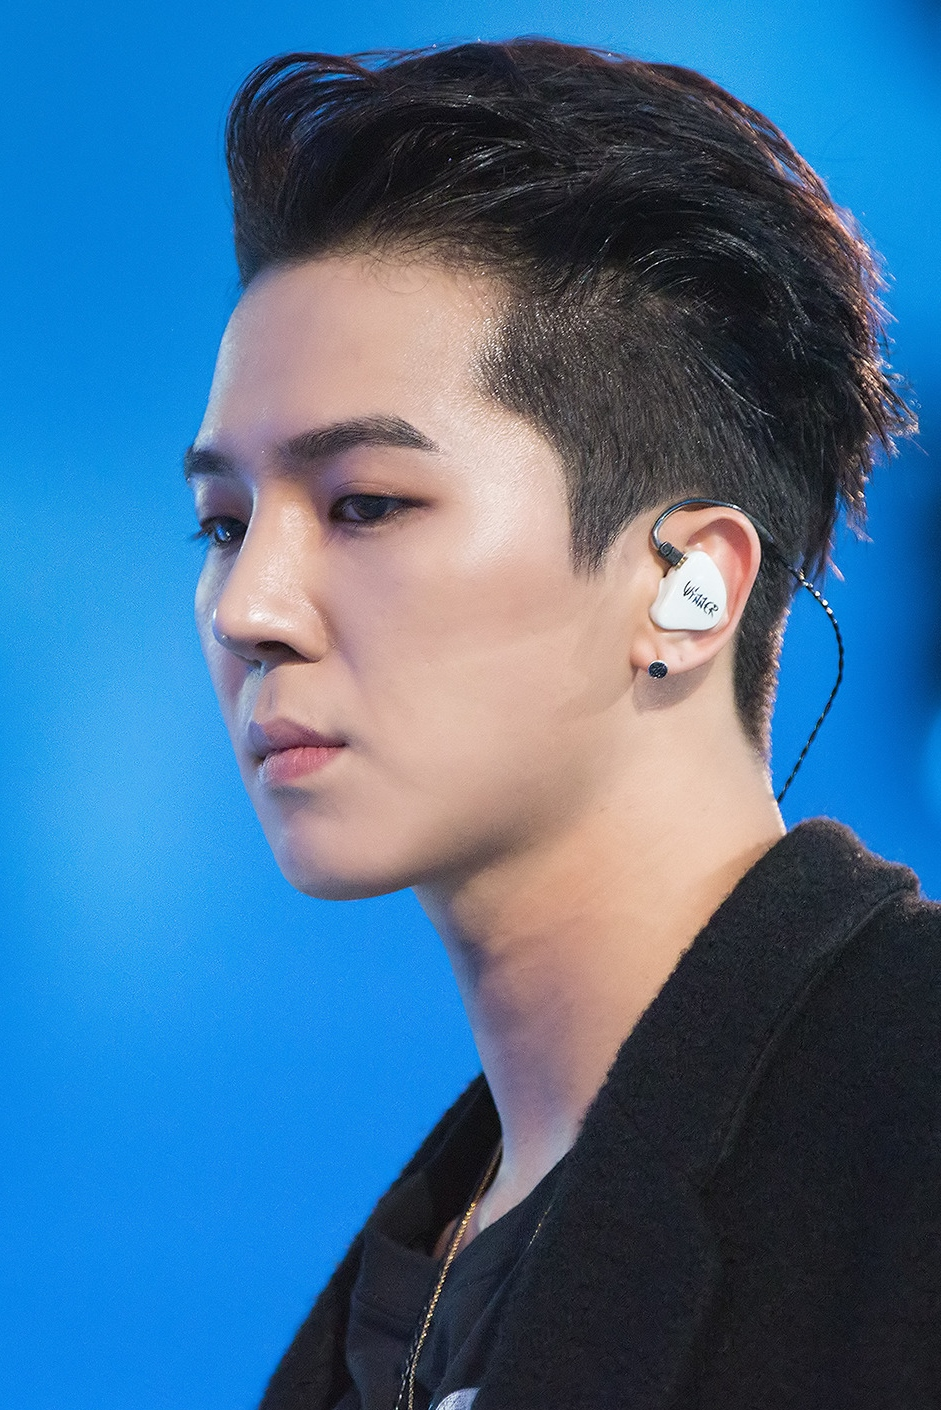 Mino Rapper Wikipedia